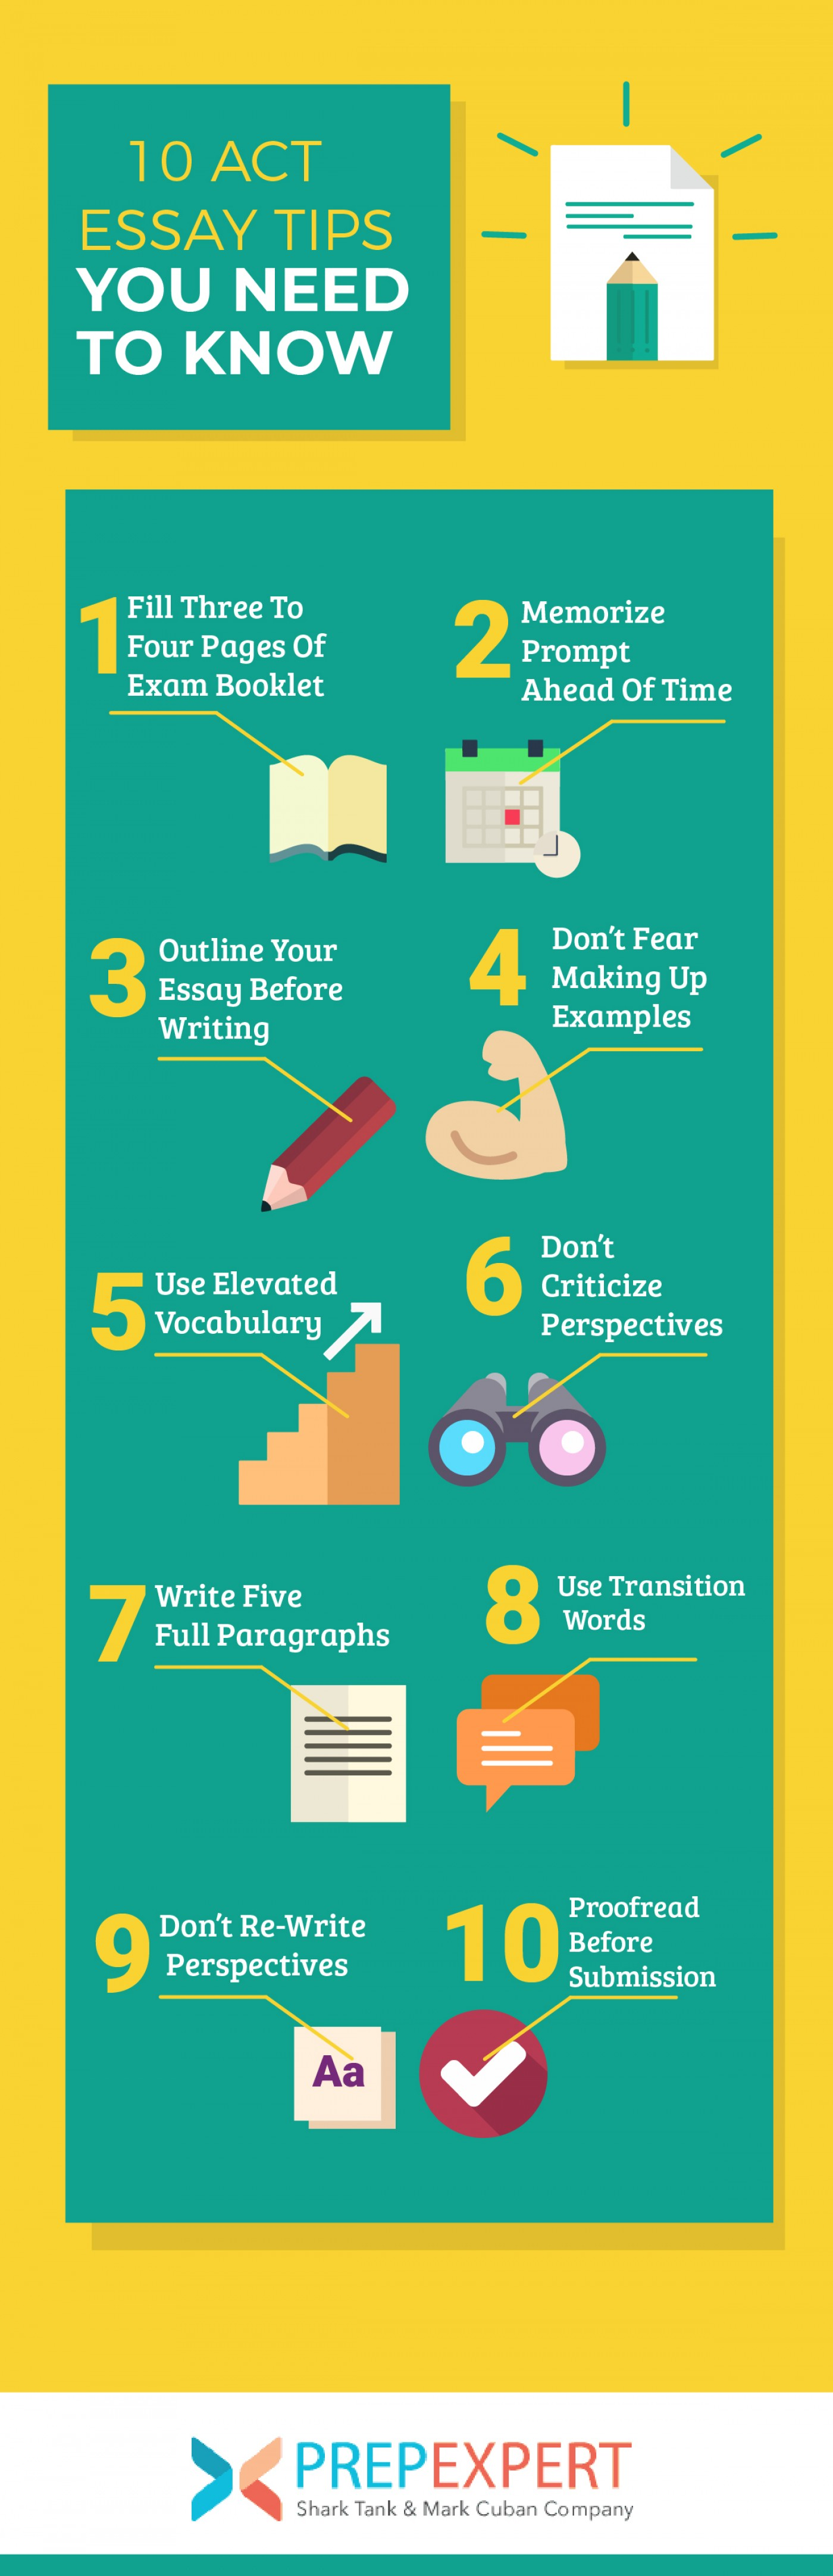 017 Essay Example Act 235585 Essayinfographics 052918 Fearsome Test Time Limit Score 8 1400